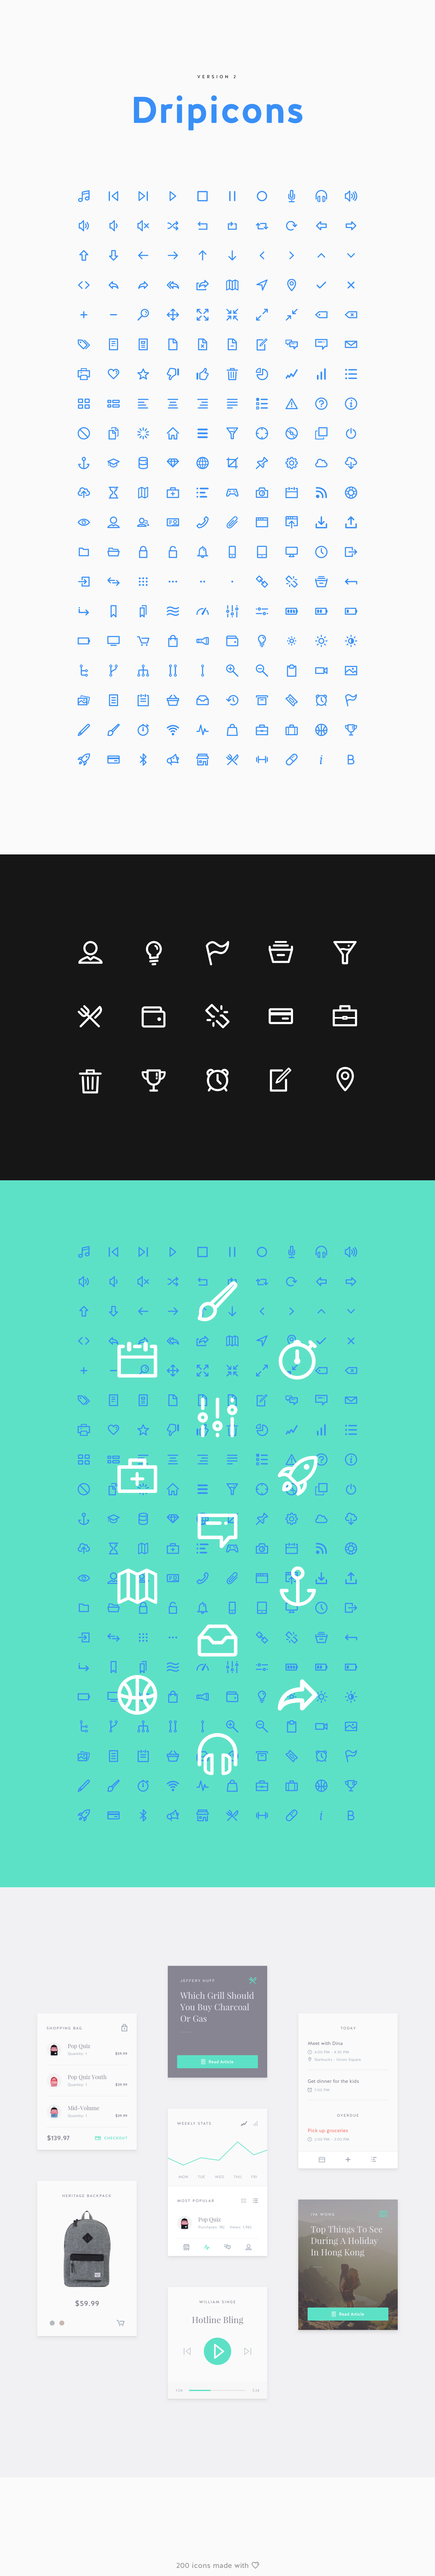 Dripicons V2 (Free Iconset) - SVG, Webfont, PSD, Sketch on Behance